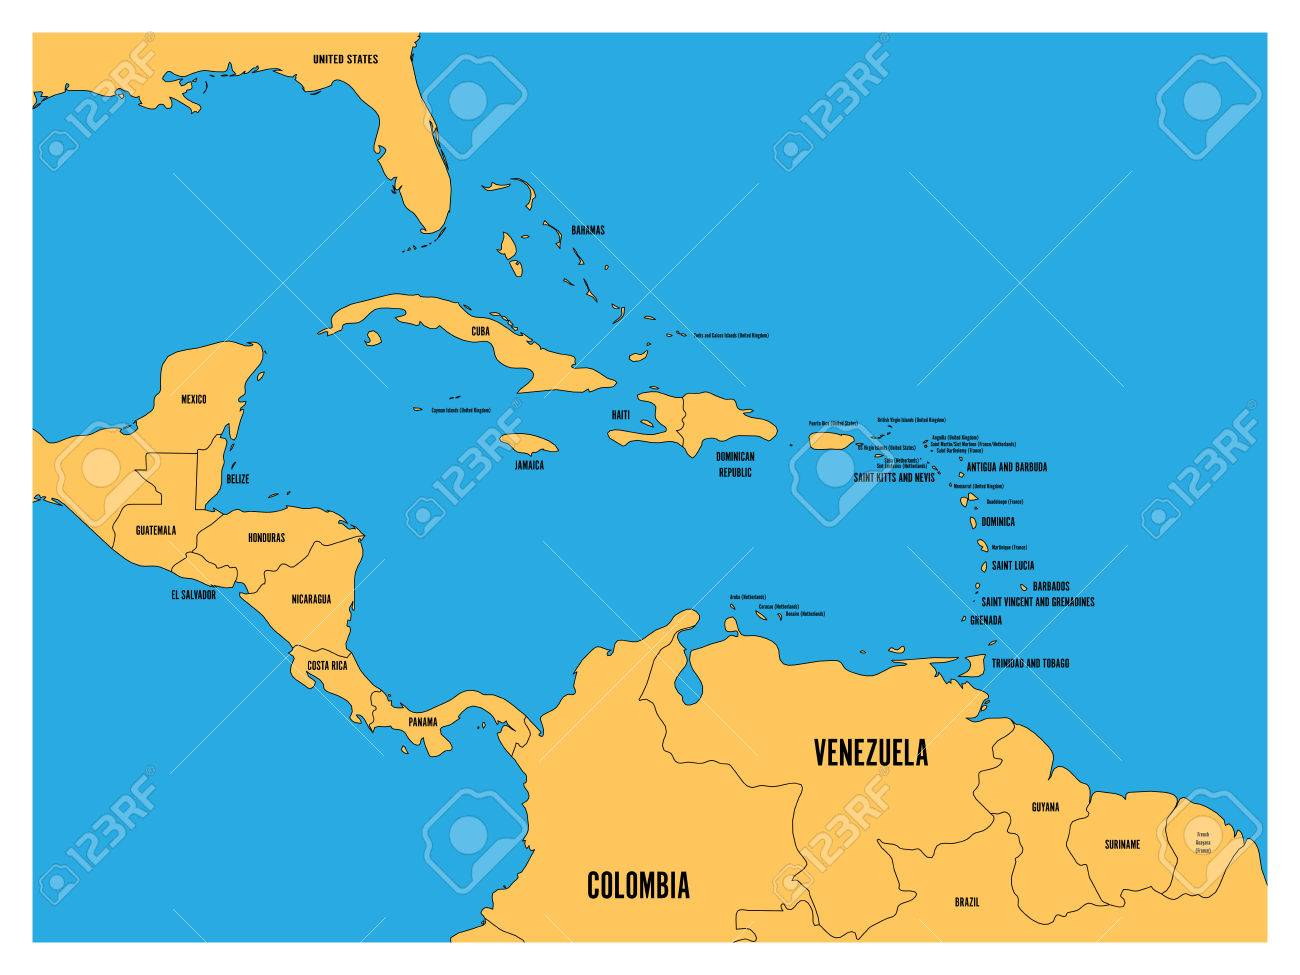 Central america and carribean states political map yellow land central america and carribean states political map yellow land with black country names labels on gumiabroncs